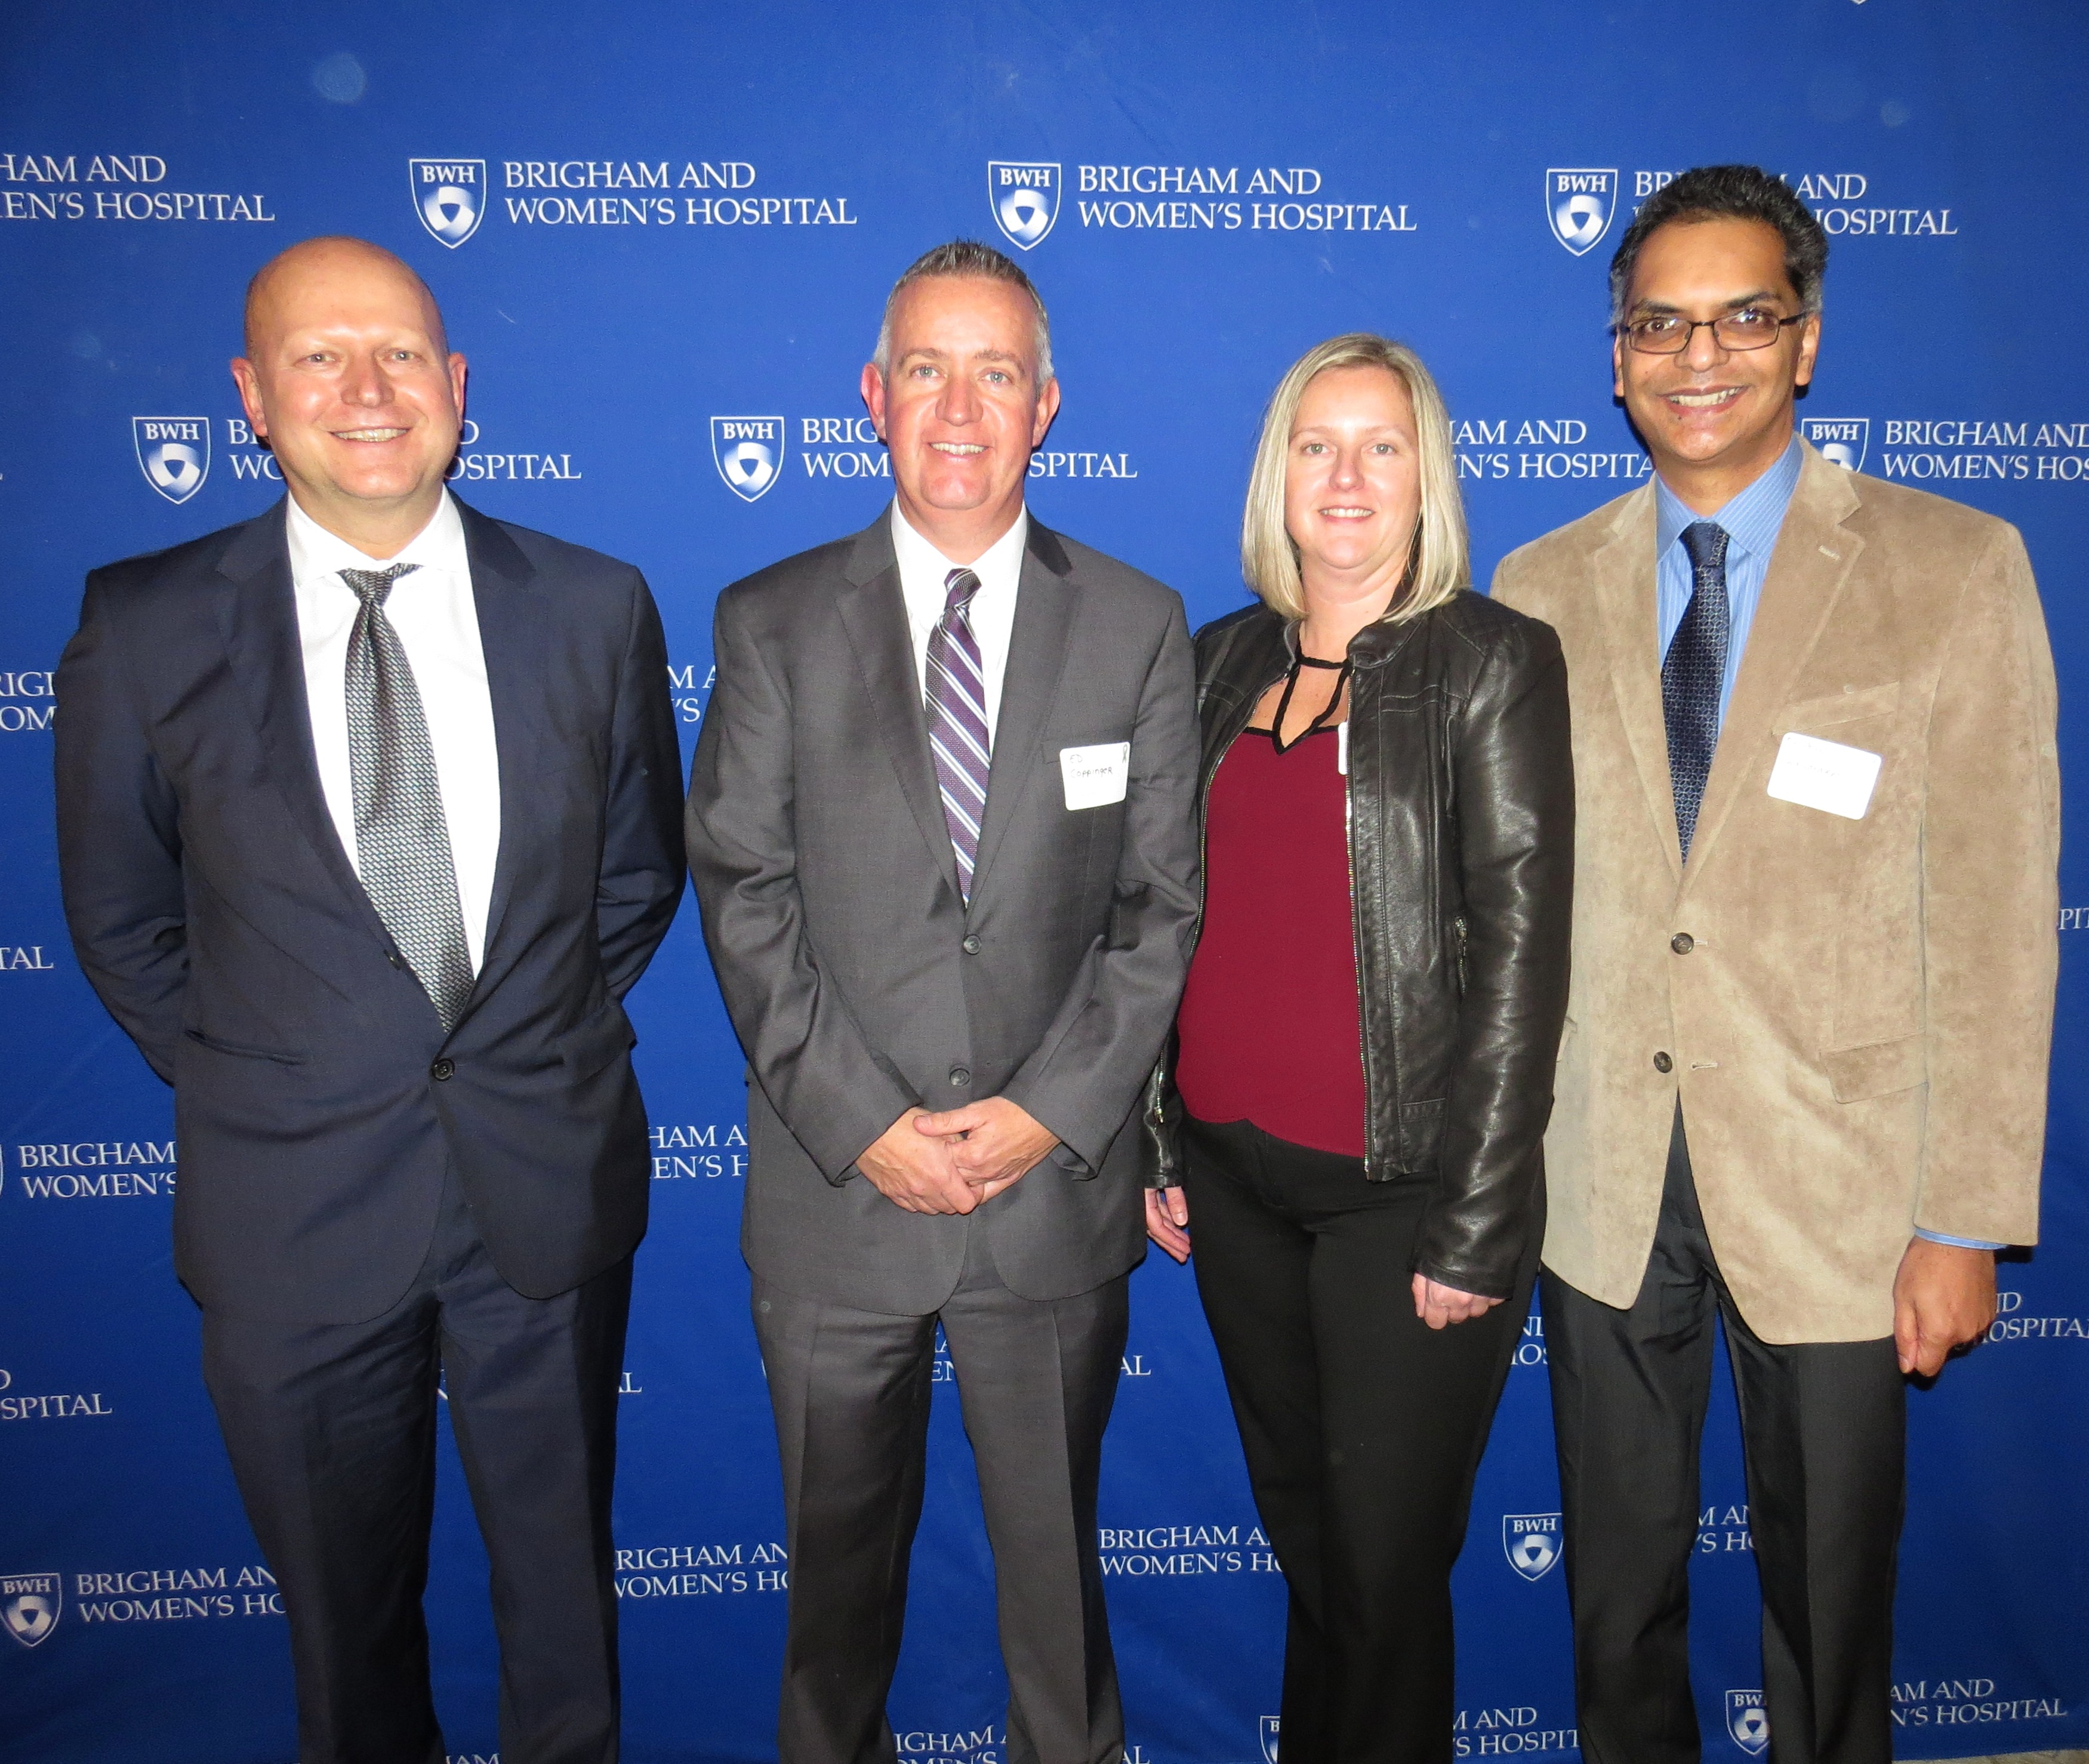 From left: Stefan Tullius, Edward Coppinger, Eileen Coppinger and Anil Chandraker, MD, medical director of Renal Transplantation, who presented on the future of kidney transplants at the event